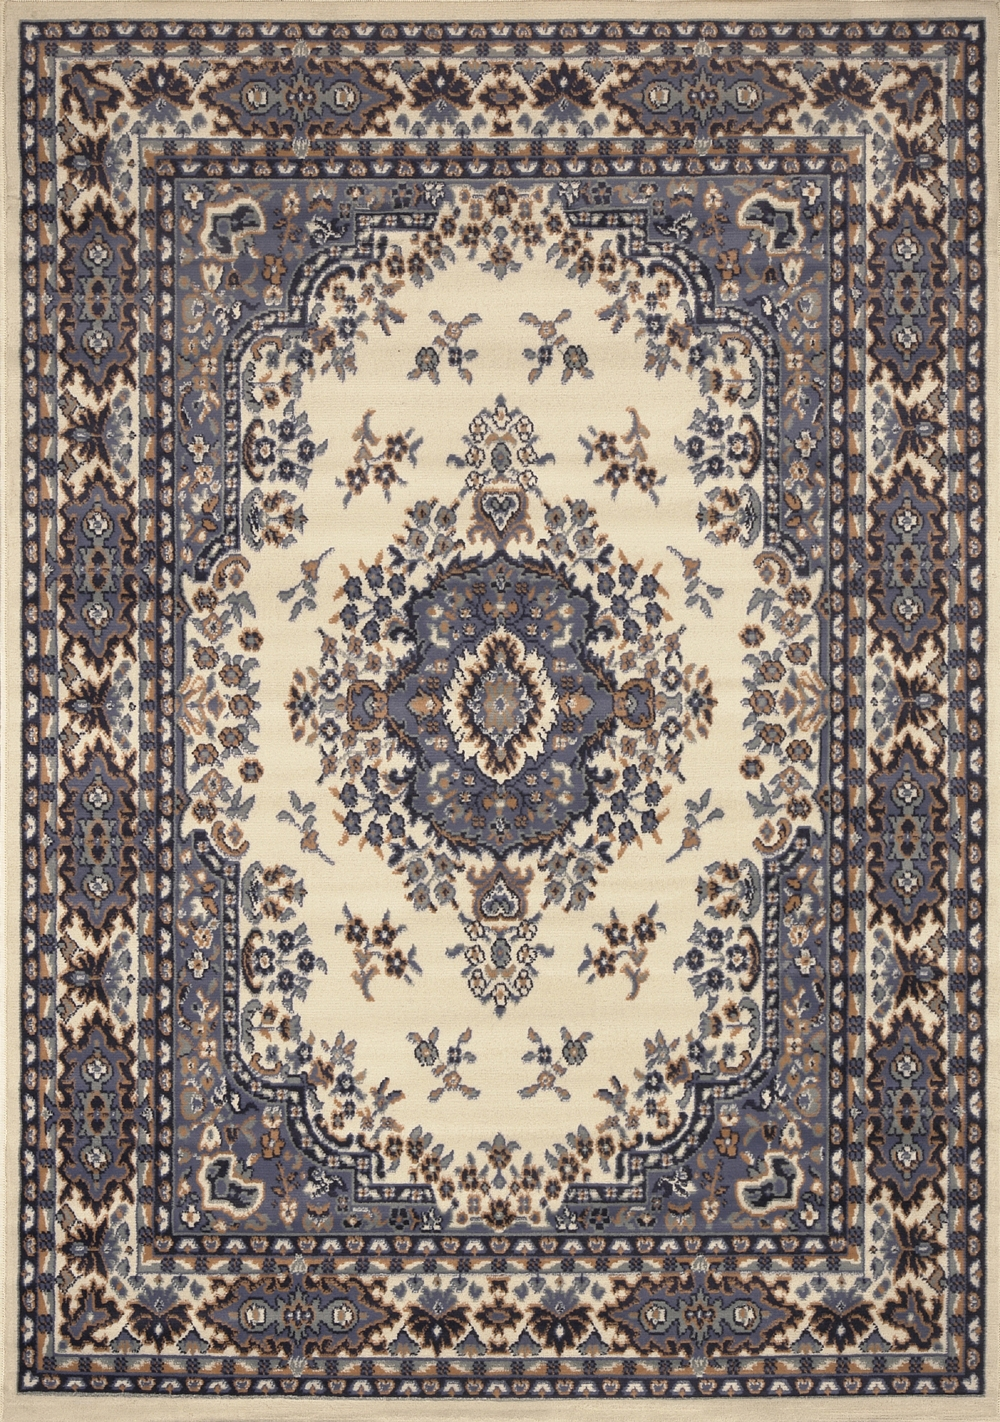 Large Traditional 8×11 Oriental Area Rug Persian Style Carpet Intended For Persian Style Wool Rugs (View 2 of 15)